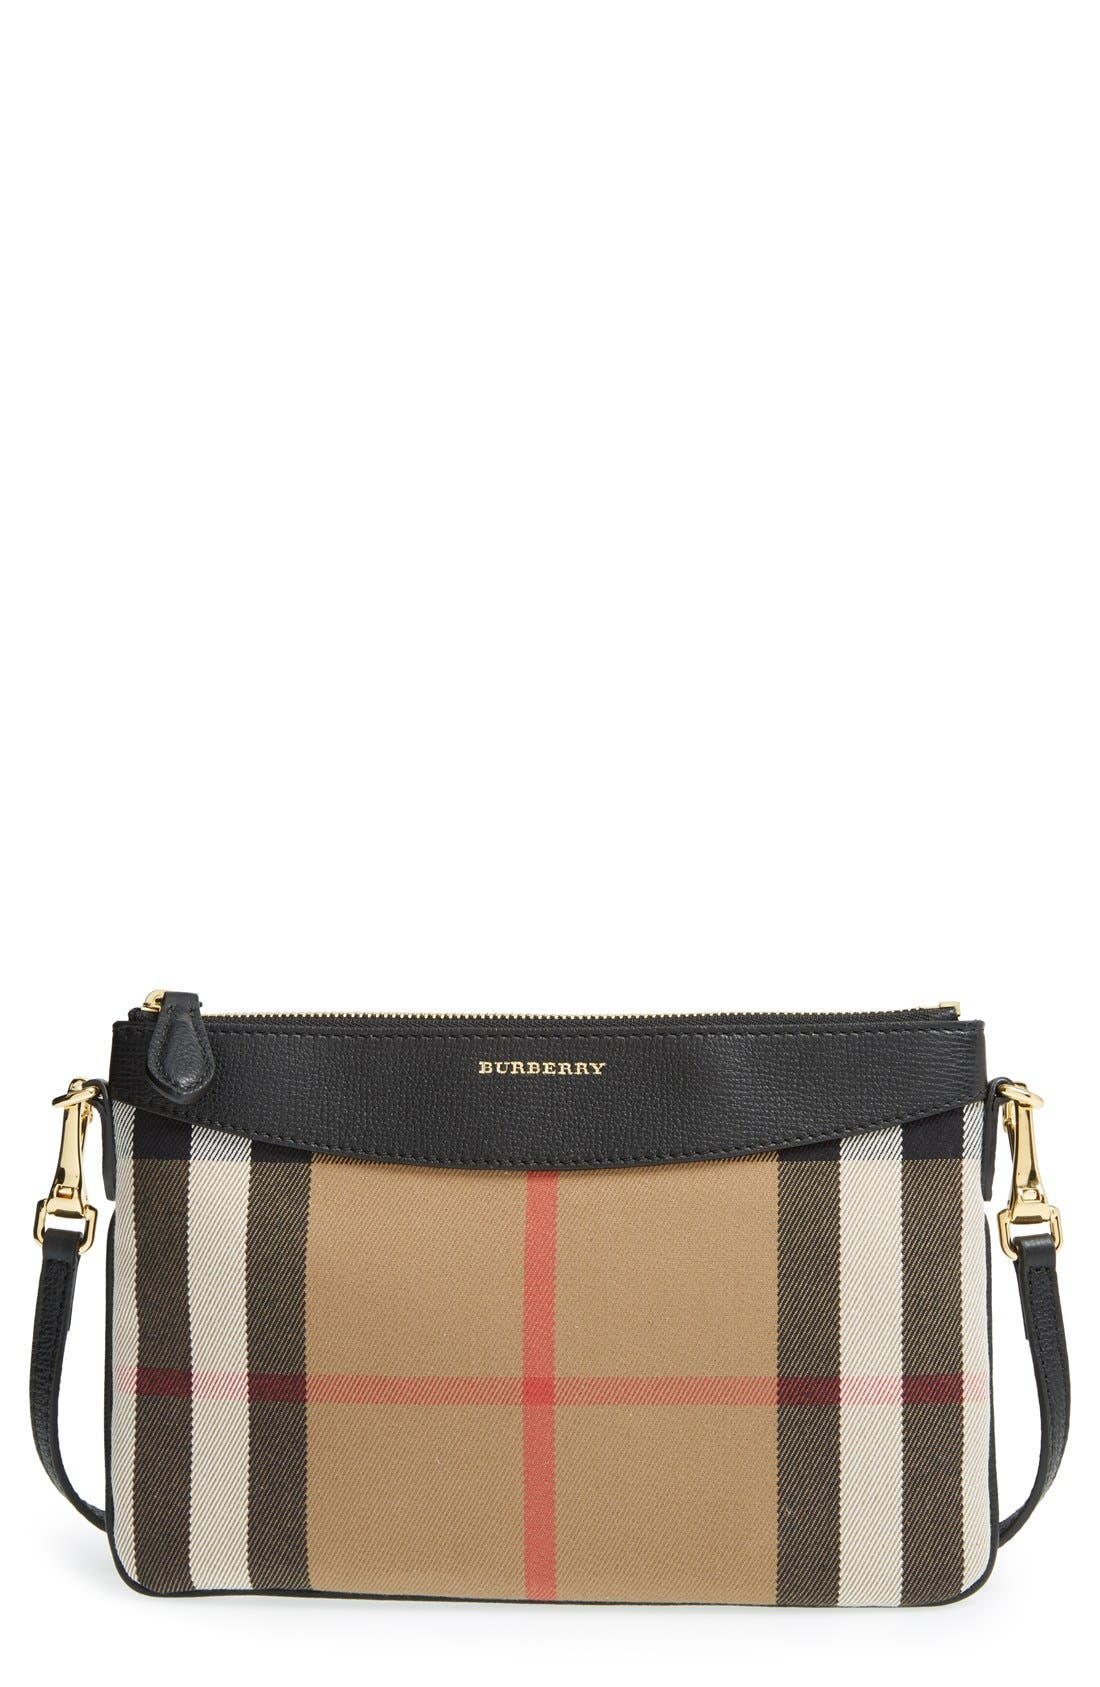 Alternate Image 1 Selected - Burberry 'Peyton - House Check' Crossbody Bag